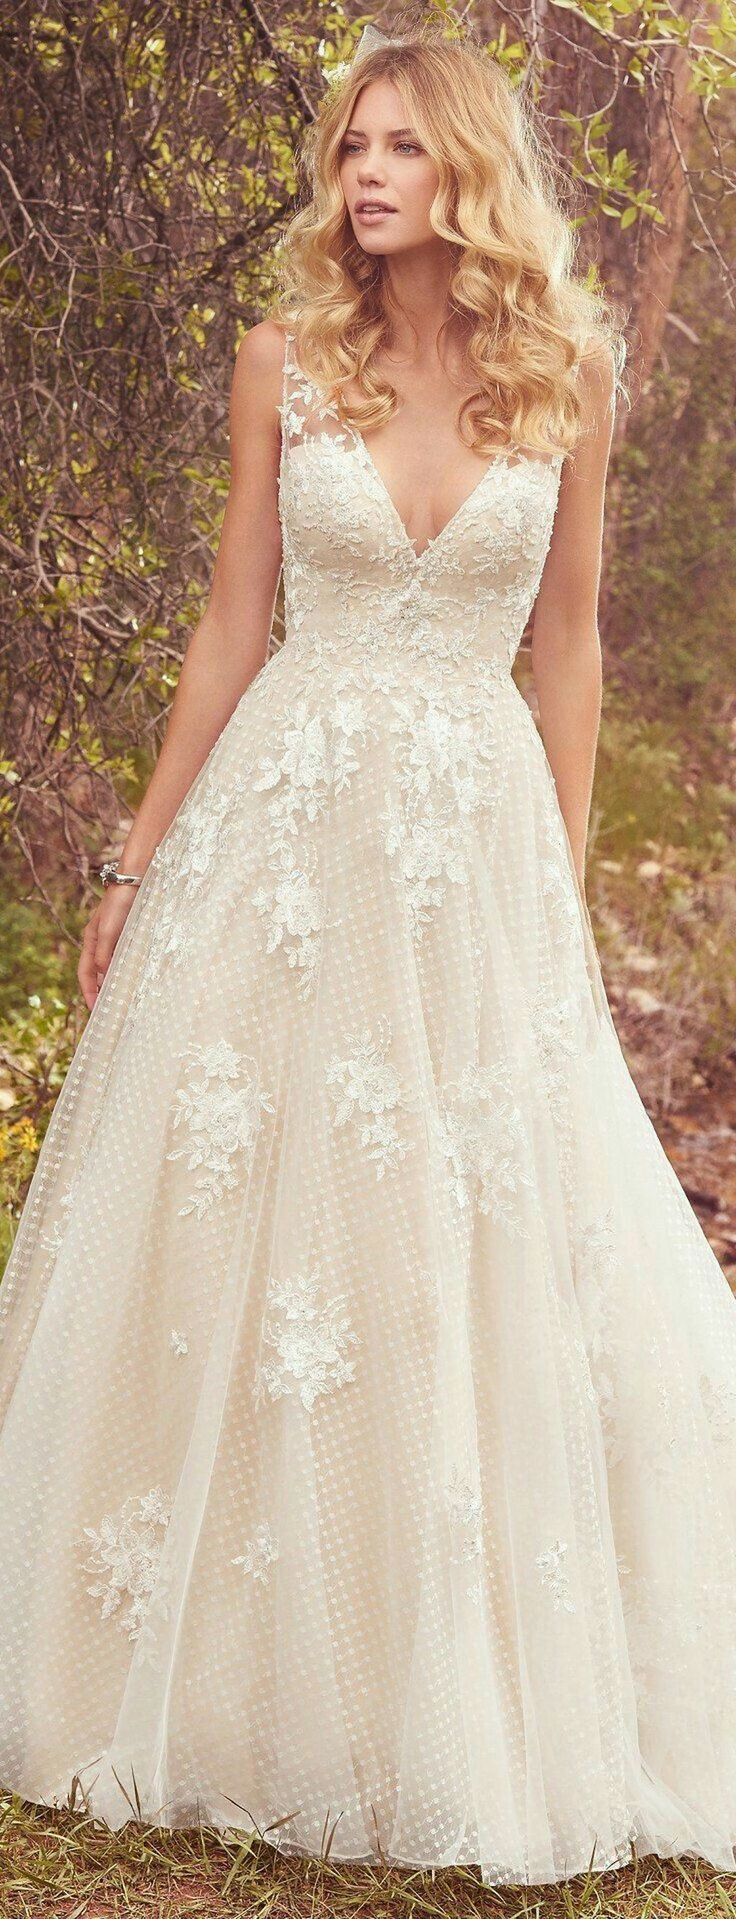 awesome 55 Romantic Valentines Day Wedding Dress Ideas  http://www.lovellywedding.com/2018/02/09/55-romantic-valentines-day-wedding-dress-ideas/ #weddingdress